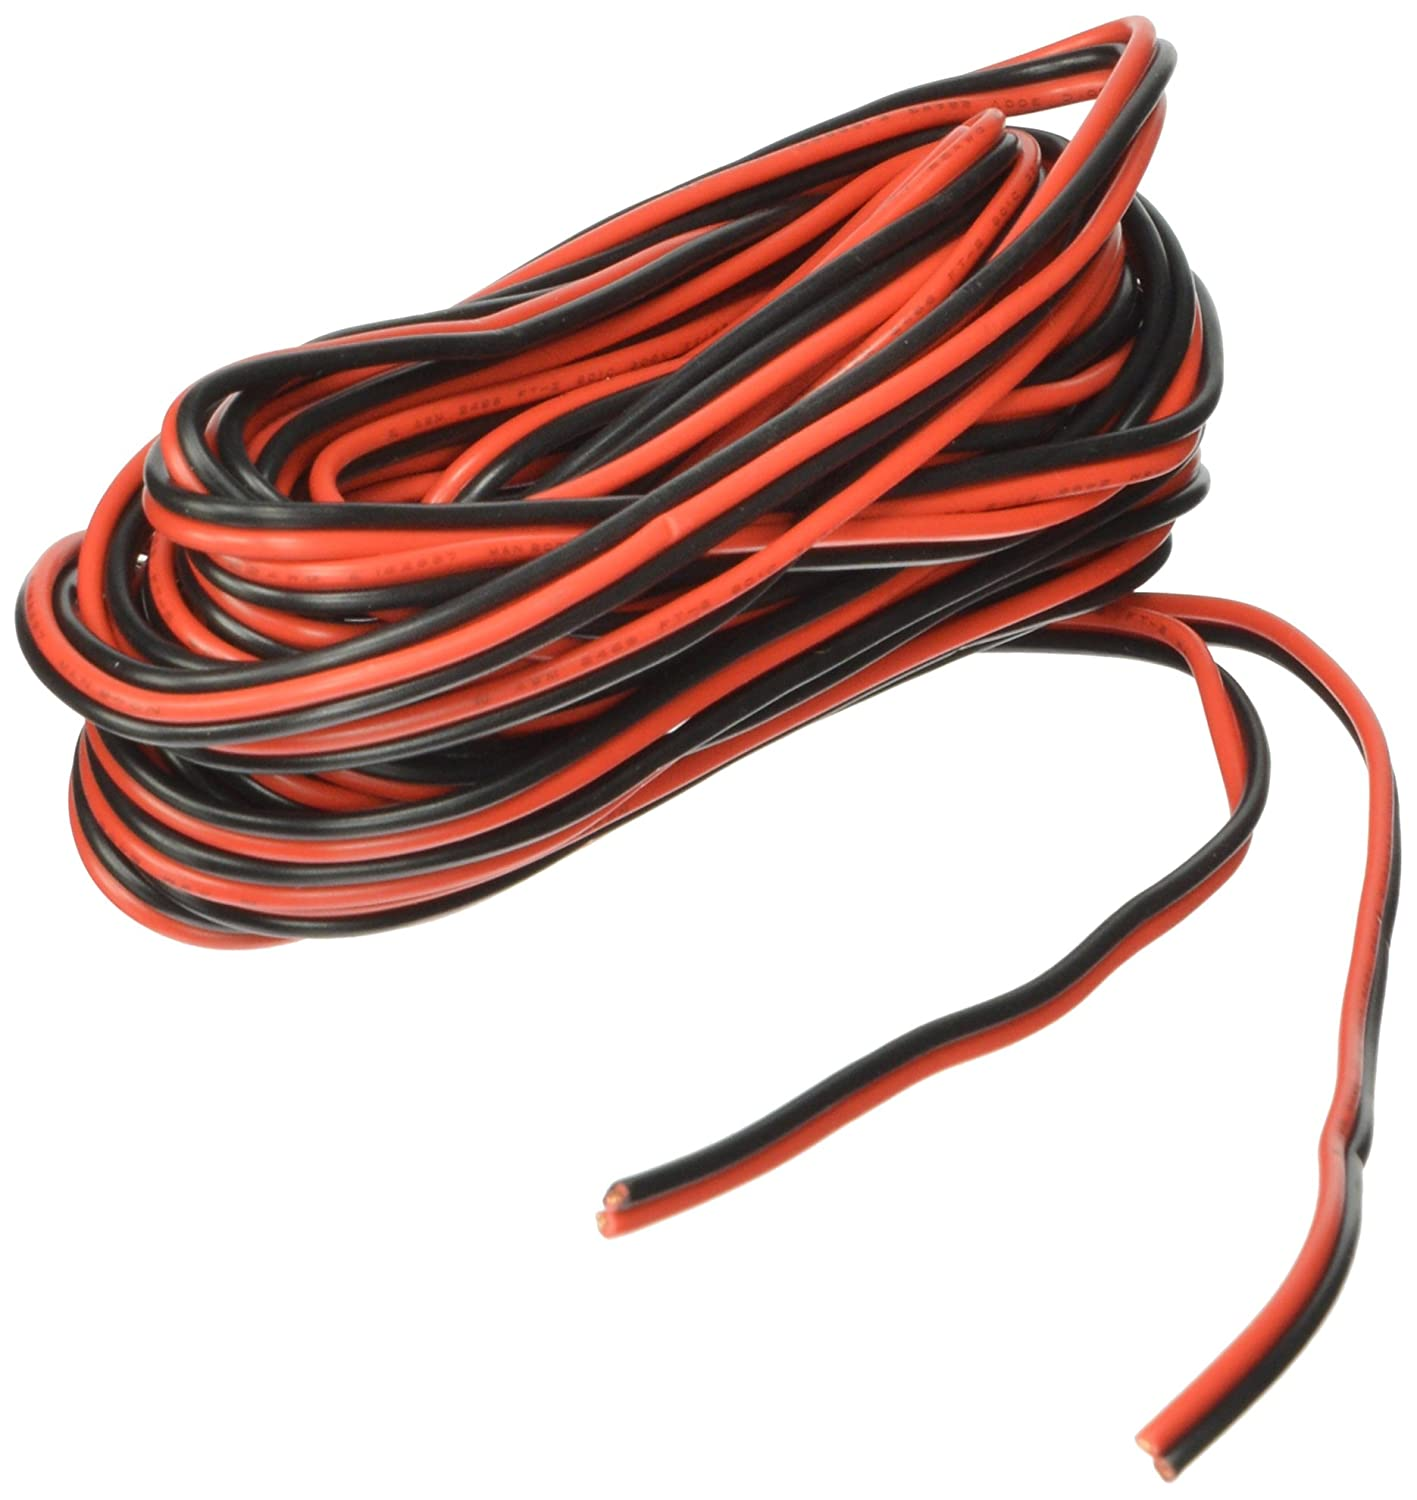 20ga 25 Red Black Hookup Wire 12v Dc Home Kitchen Wiring Led Lights In A